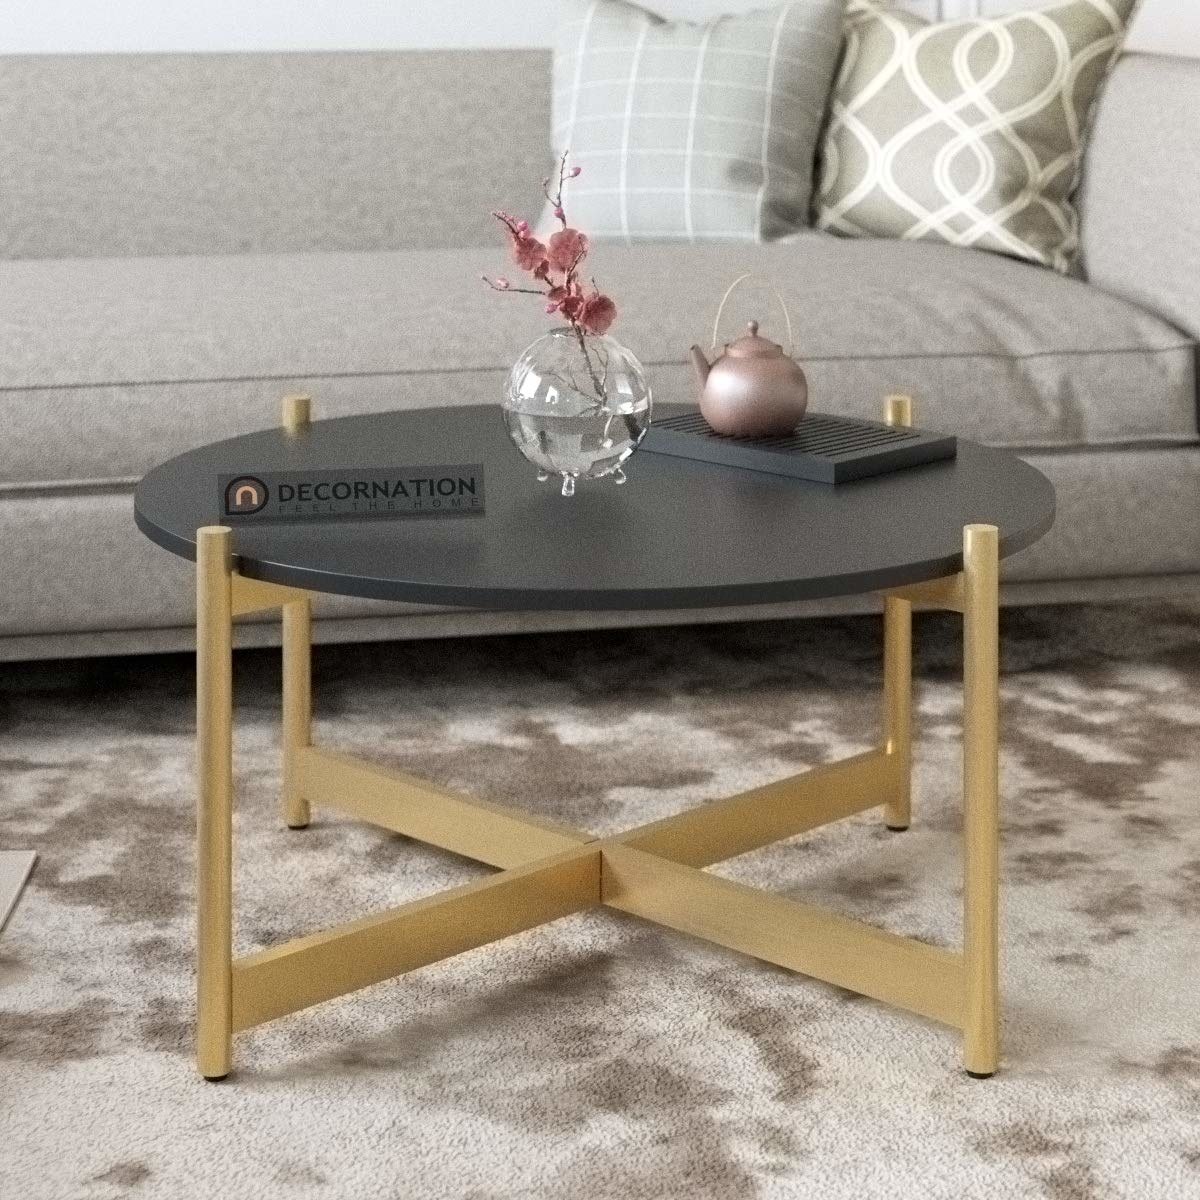 A coffee table with a black top and golden legs